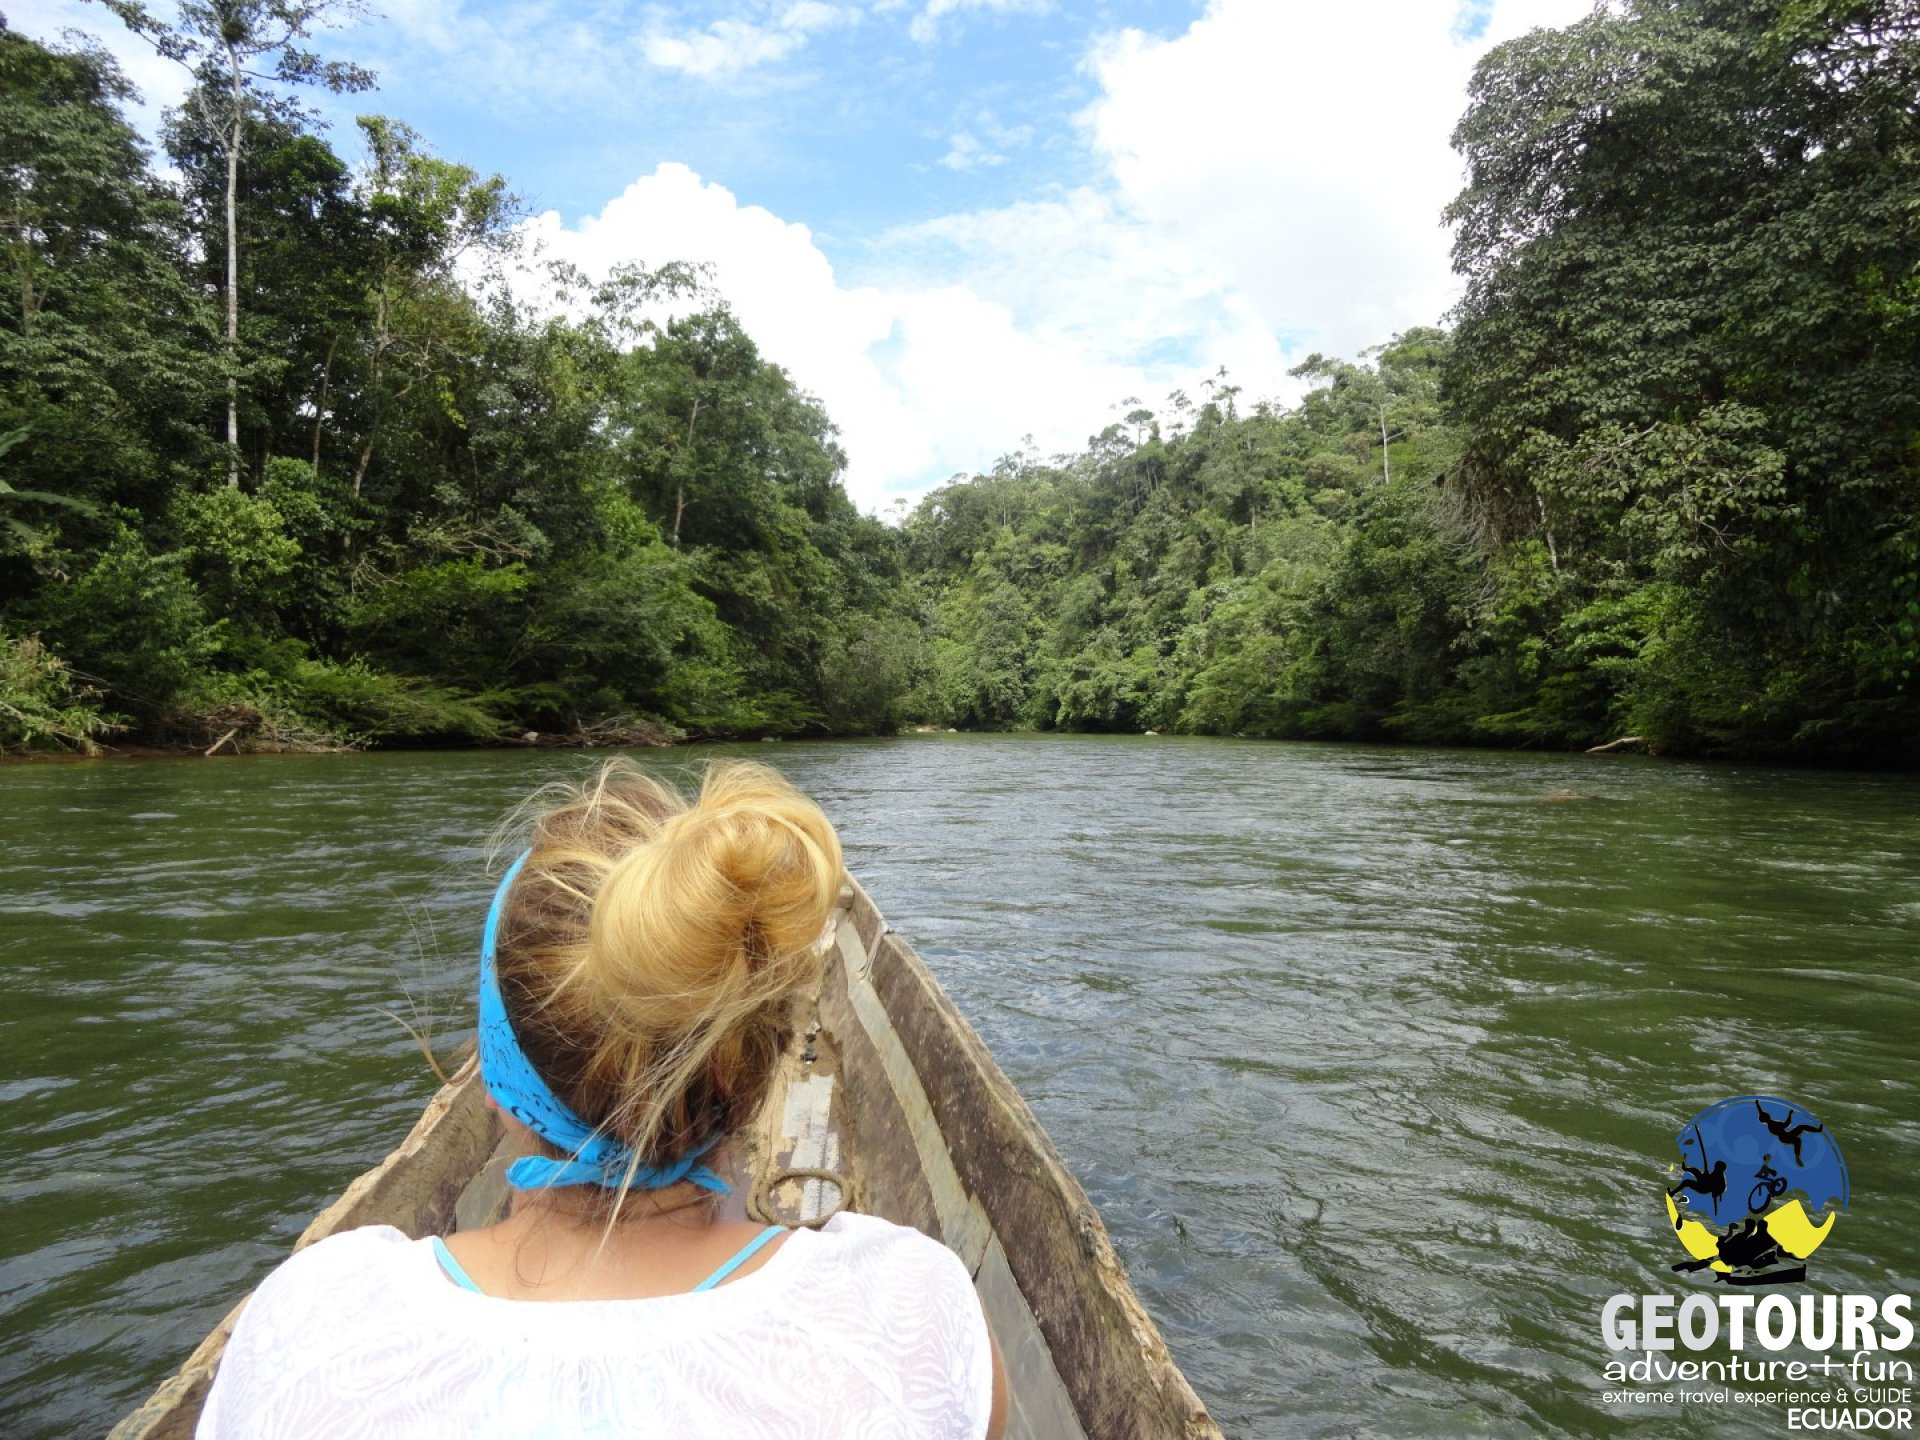 Puyopungo – Full Day Amazon Highlights Tour